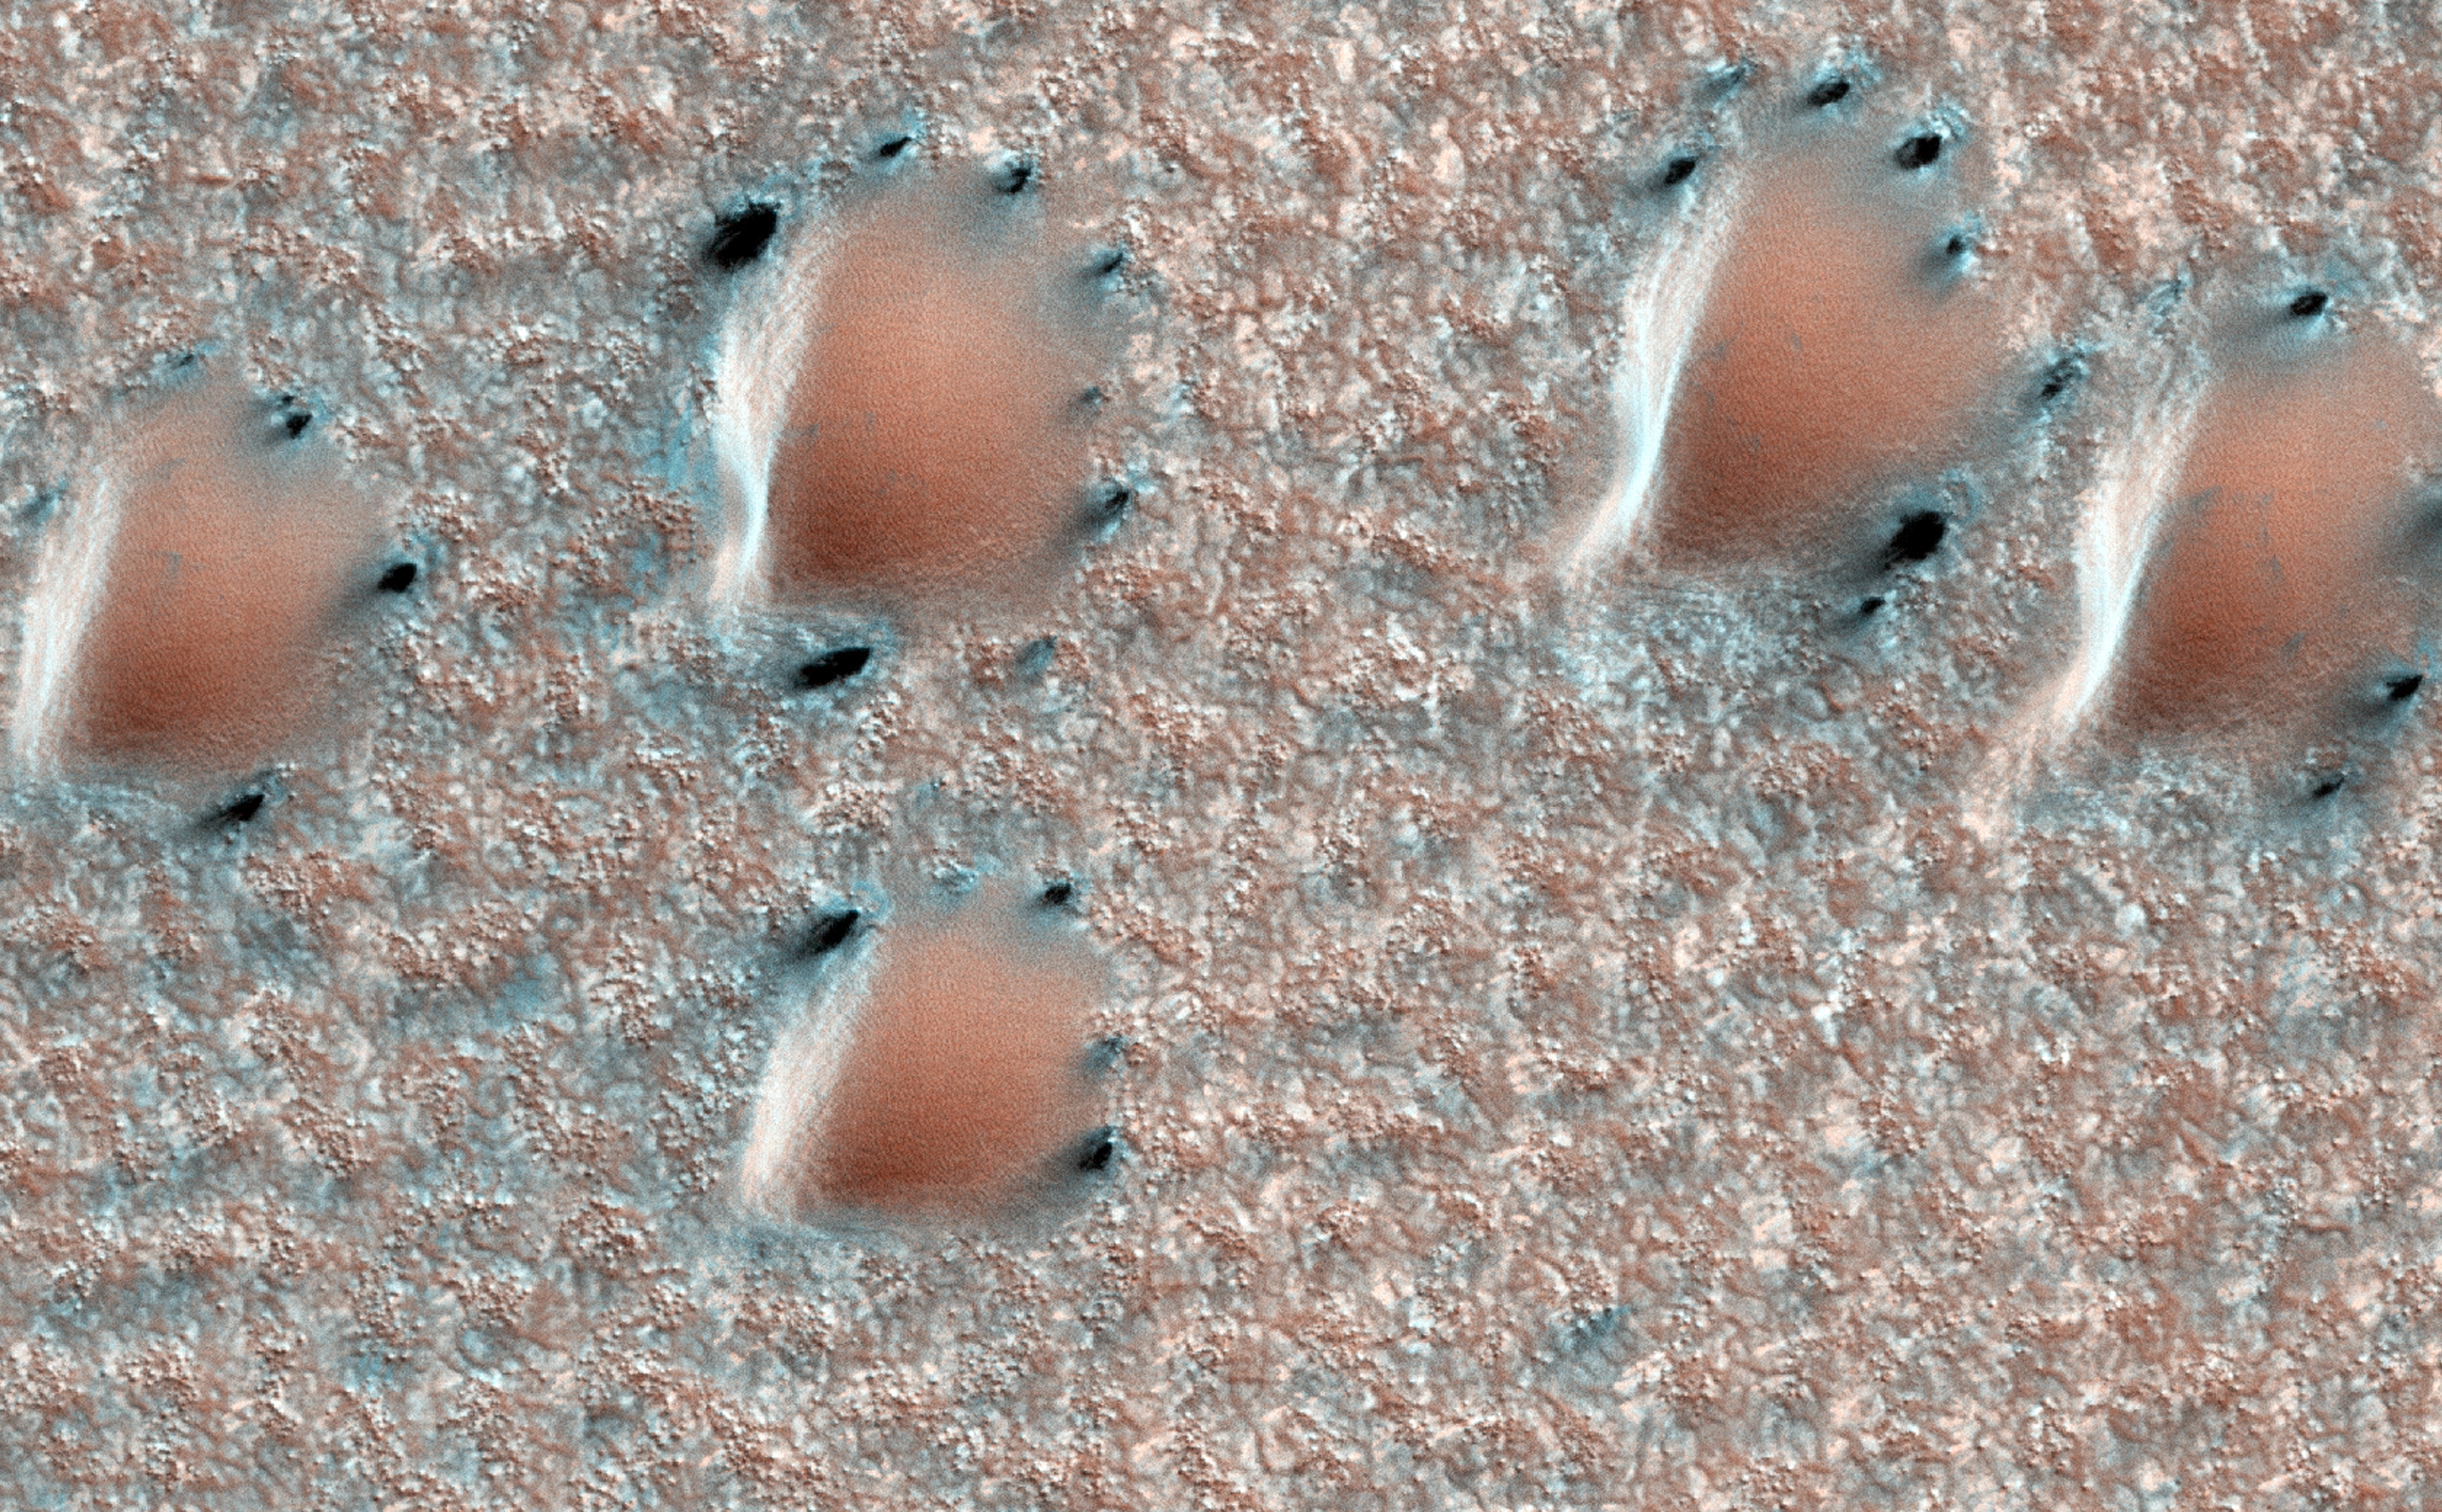 This scene is from early spring in the northern hemisphere of Mars. These dunes are covered with a layer of seasonal carbon dioxide ice (dry ice).